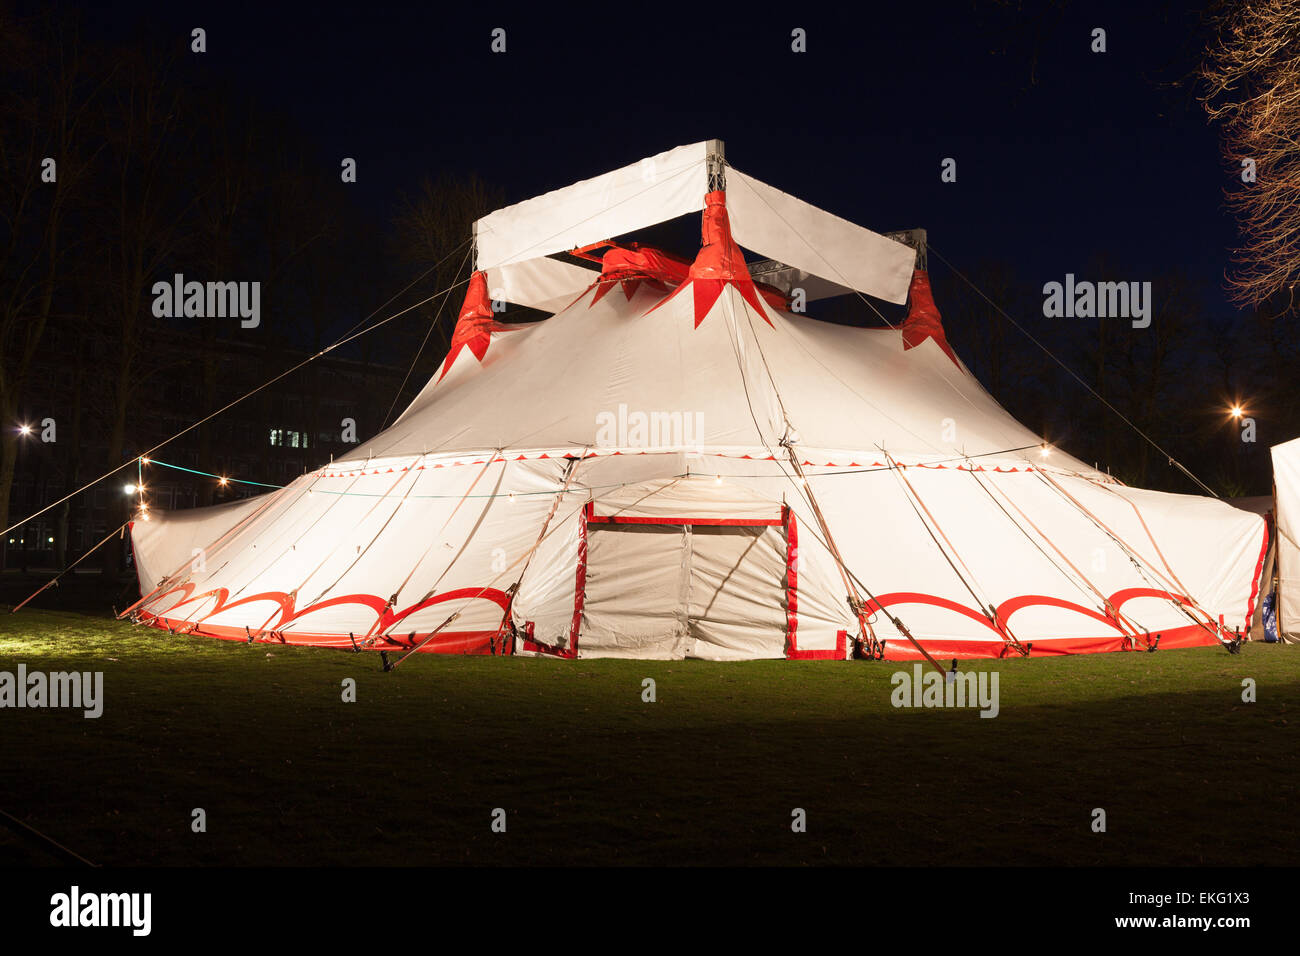 Big top circus tent Illuminated at night & Big top circus tent Illuminated at night Stock Photo: 80872683 - Alamy